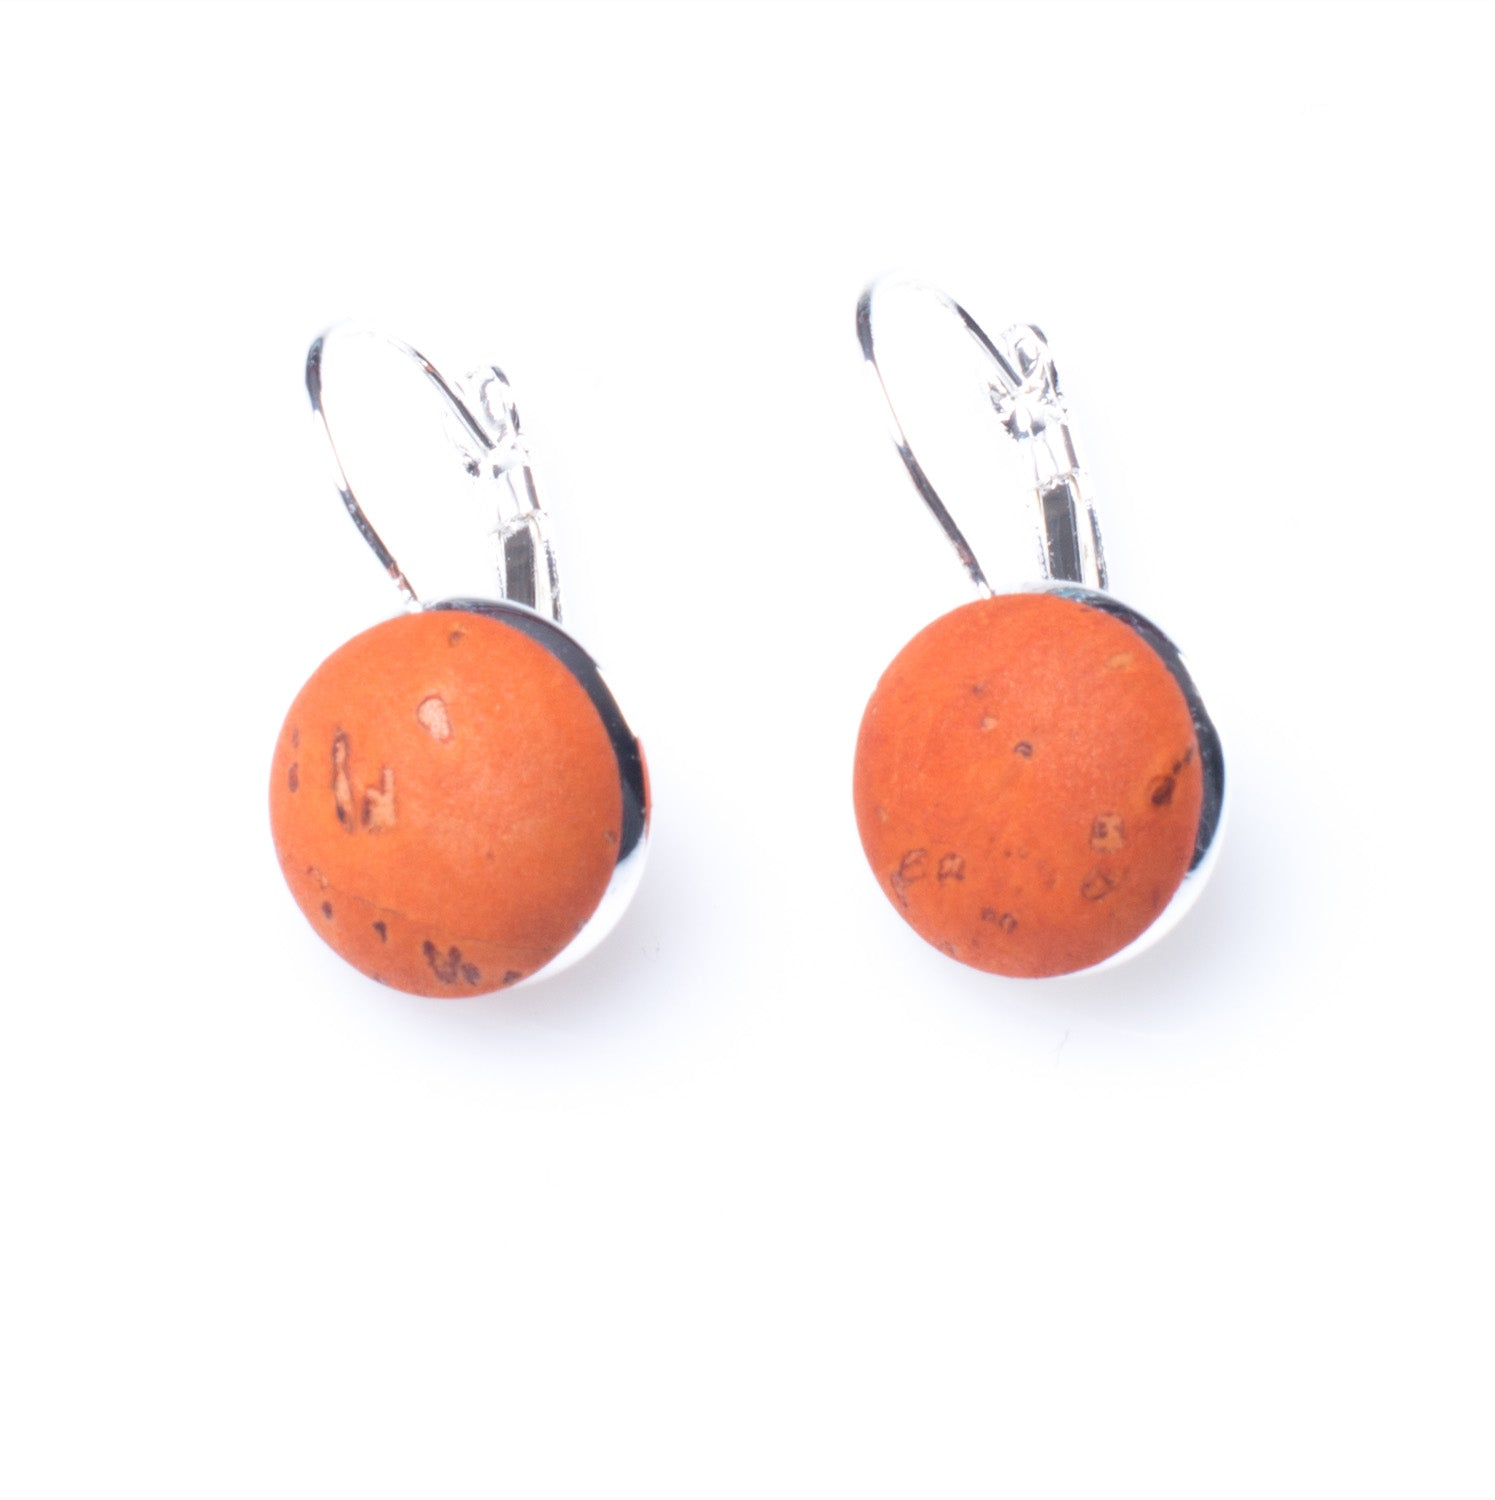 Hanging Cork Button Earrings - HowCork